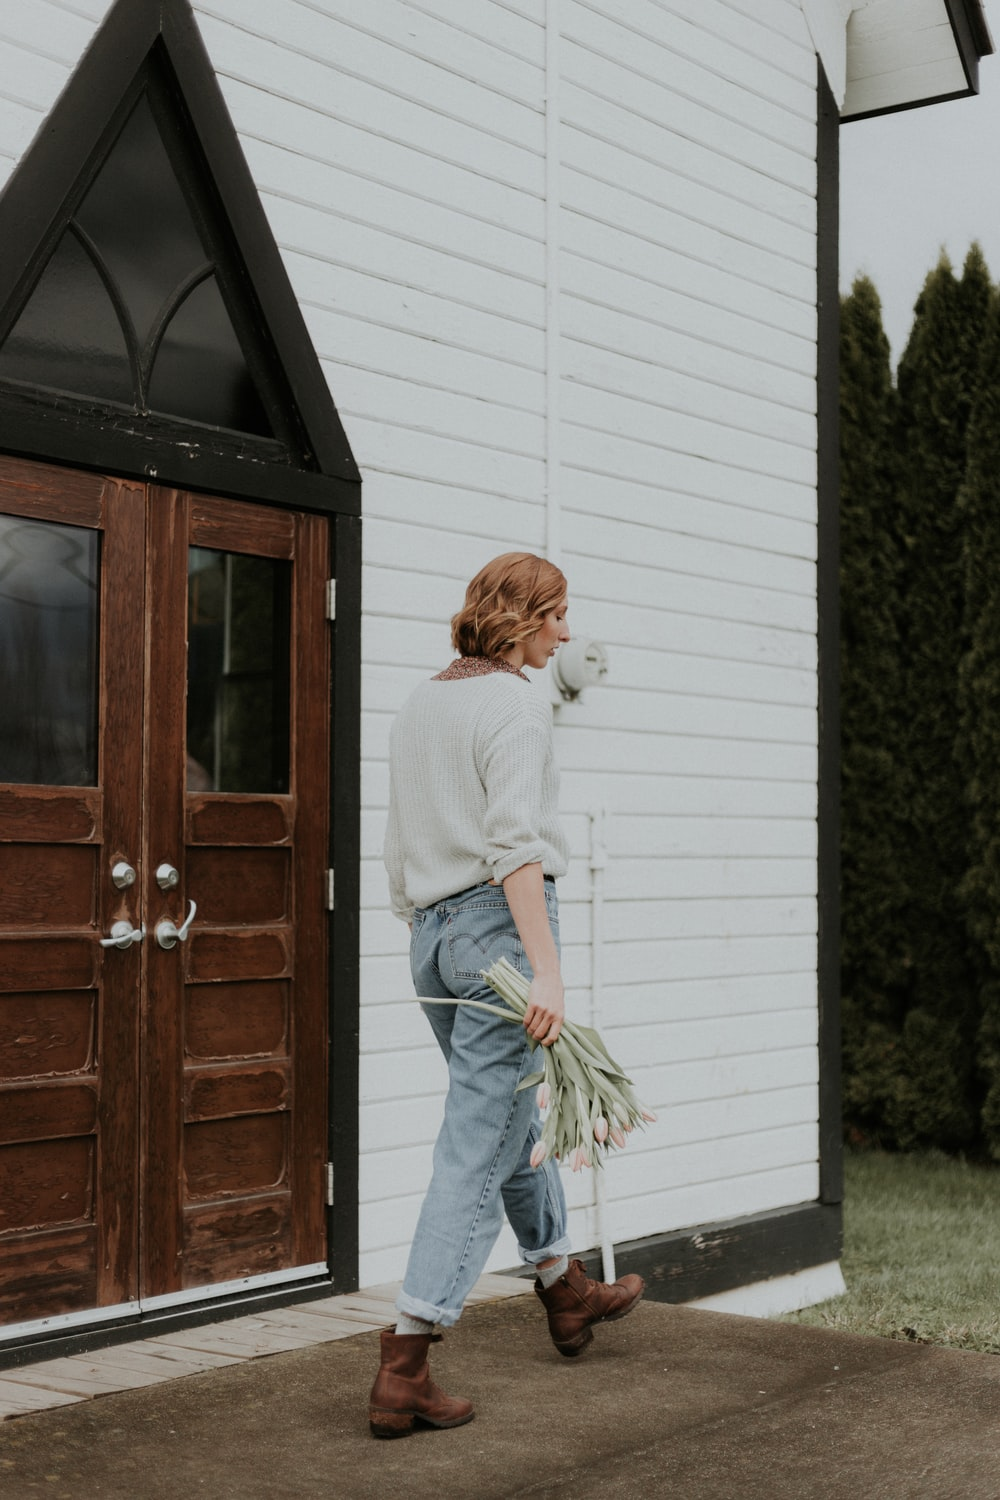 woman walking in front of closed door with flowers on hand